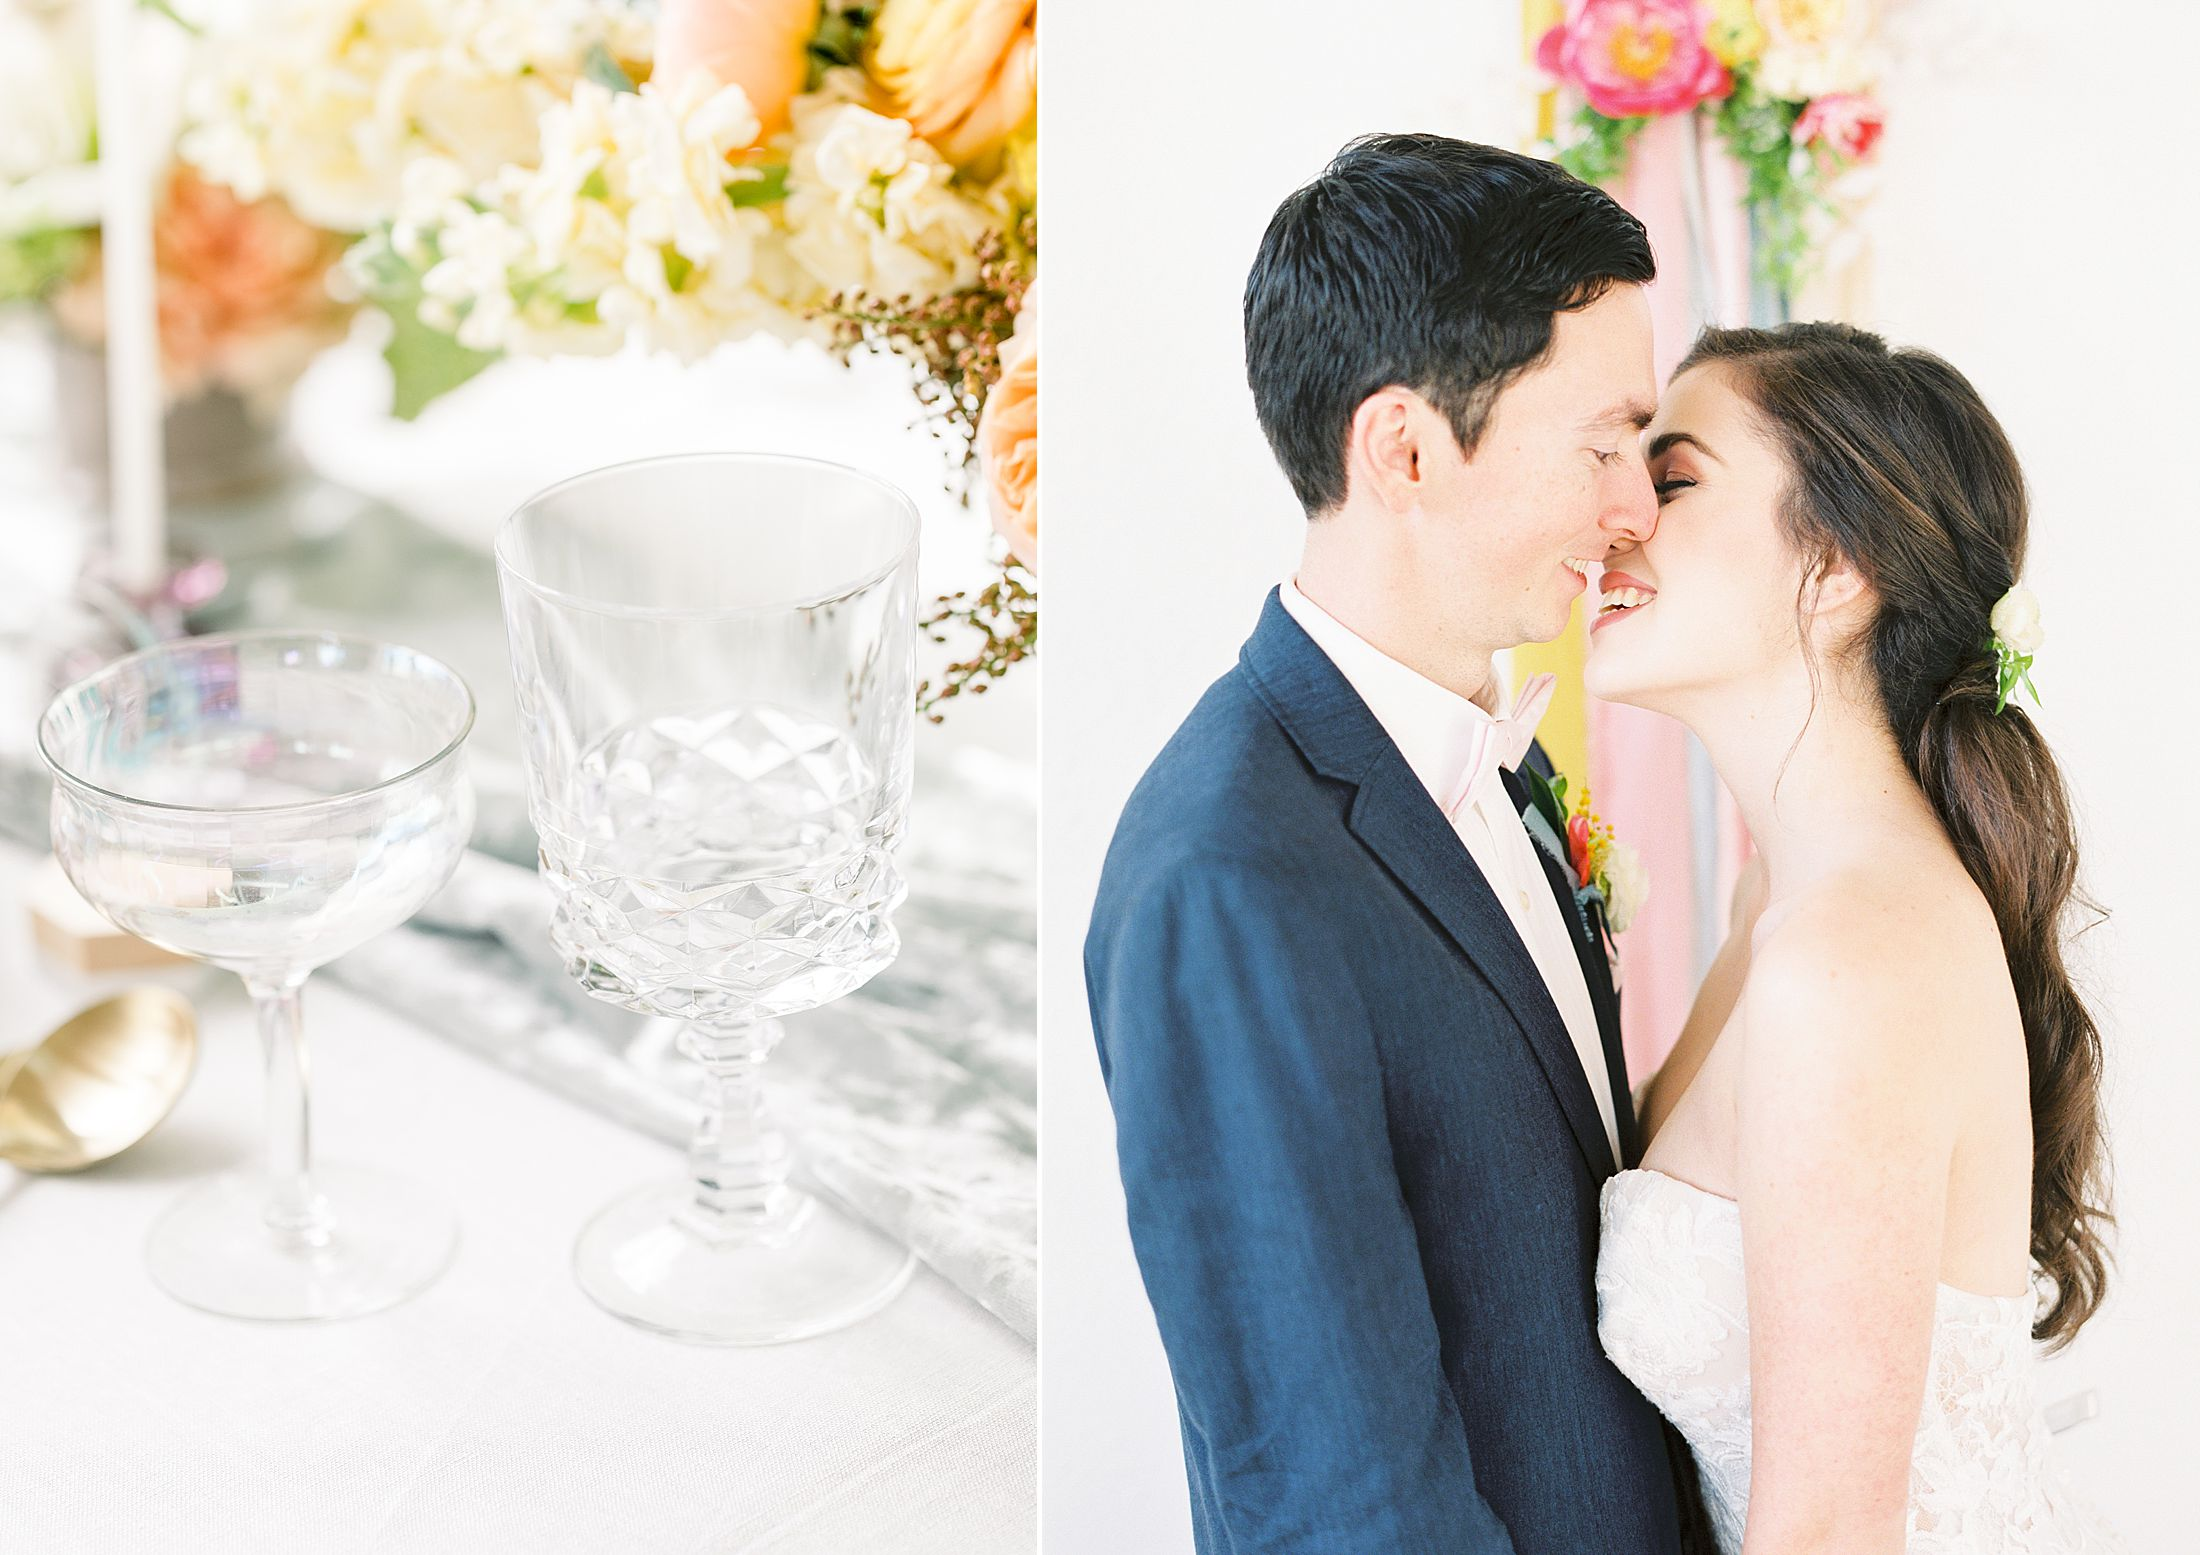 Bay Area Spring Wedding Inspiration - Ashley Baumgartner - Inspired By This - Party Crush Studio and Lens of Lenox Videography - Bay Area Wedding Photography_0061.jpg